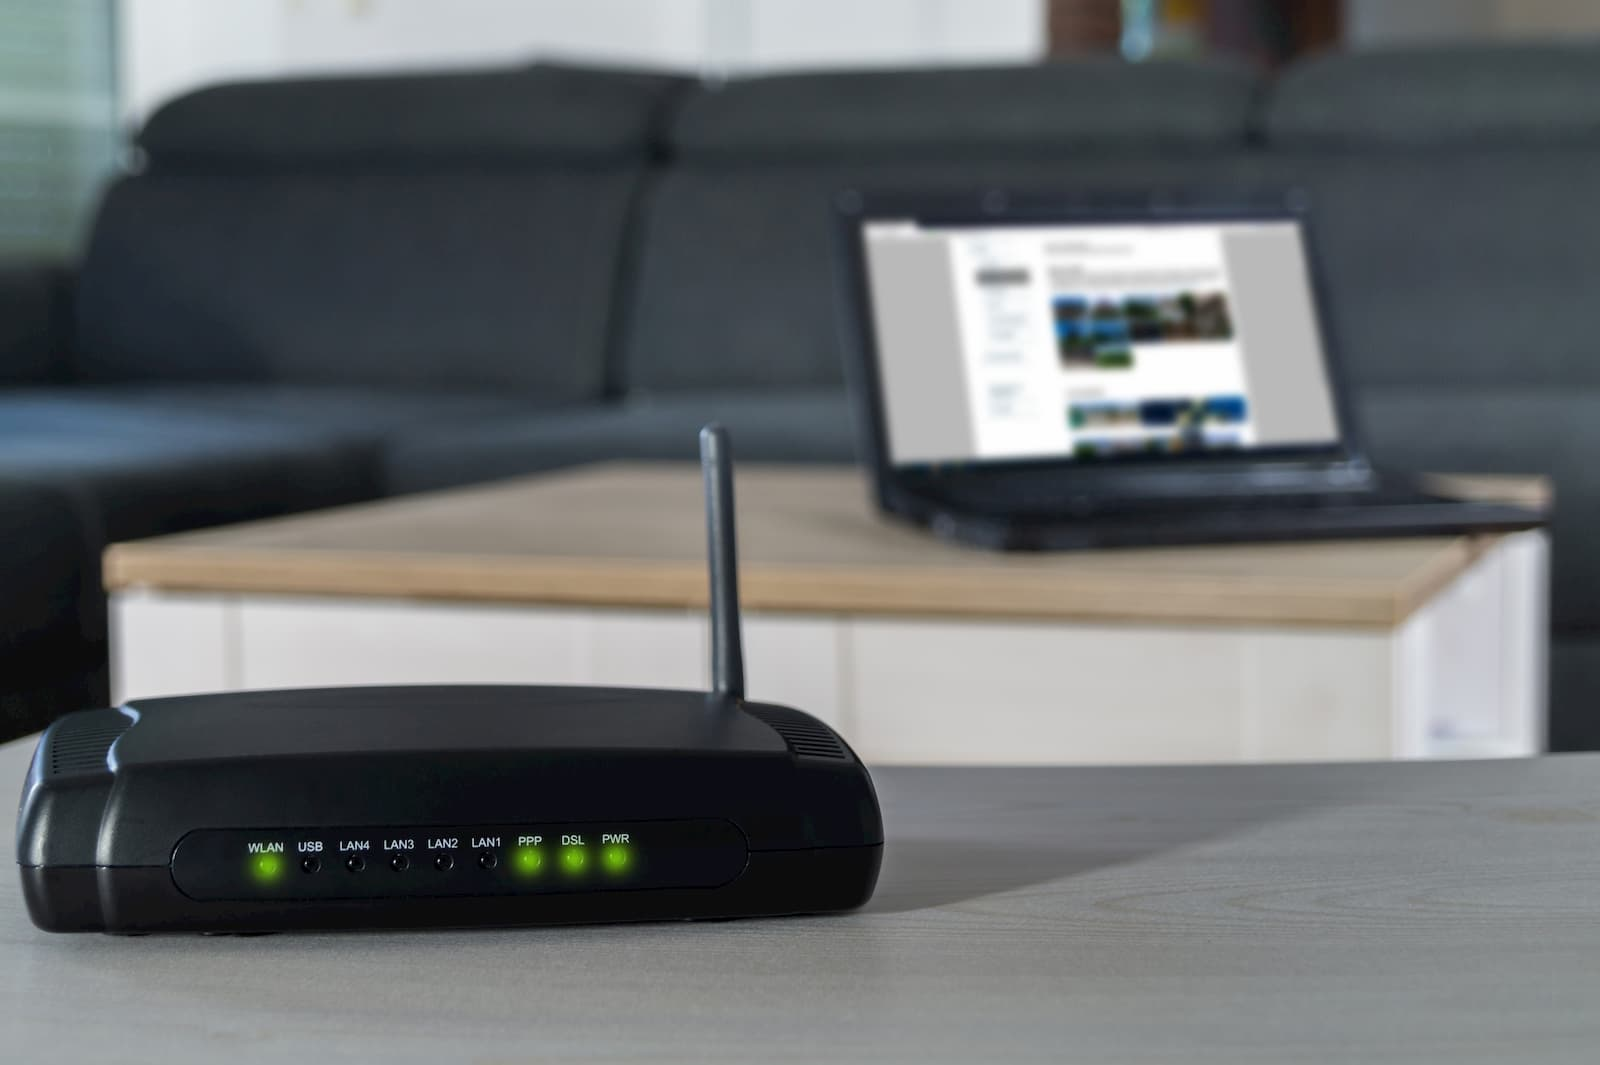 router sitting on a table near a laptop